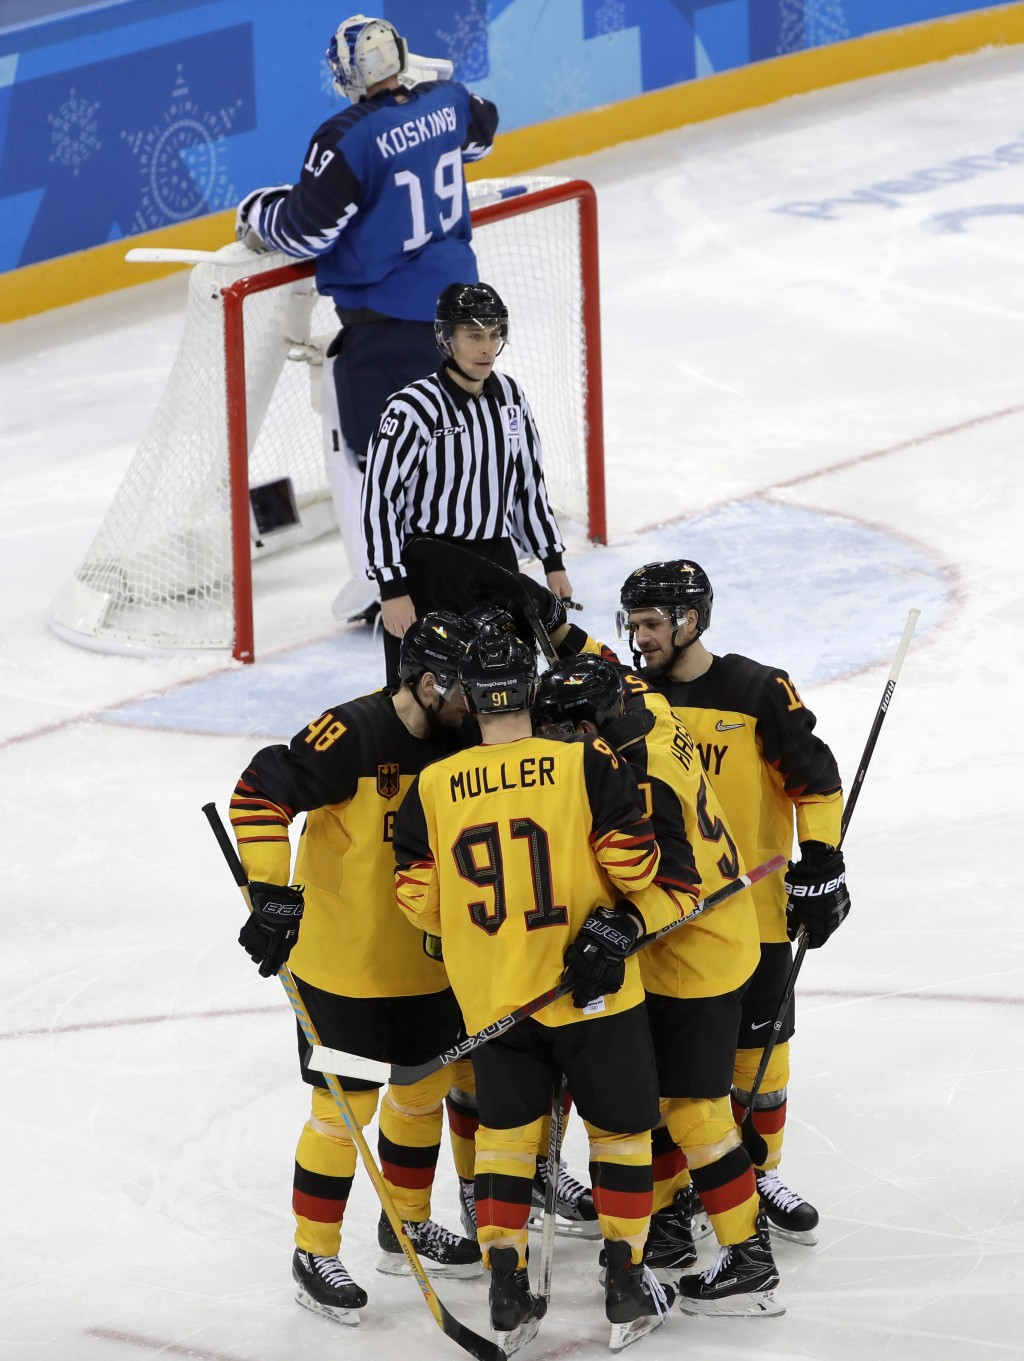 Frank Hordler (48), of Germany, celebrates a goal with his teammates during the third period of the preliminary round of the men's hockey game against